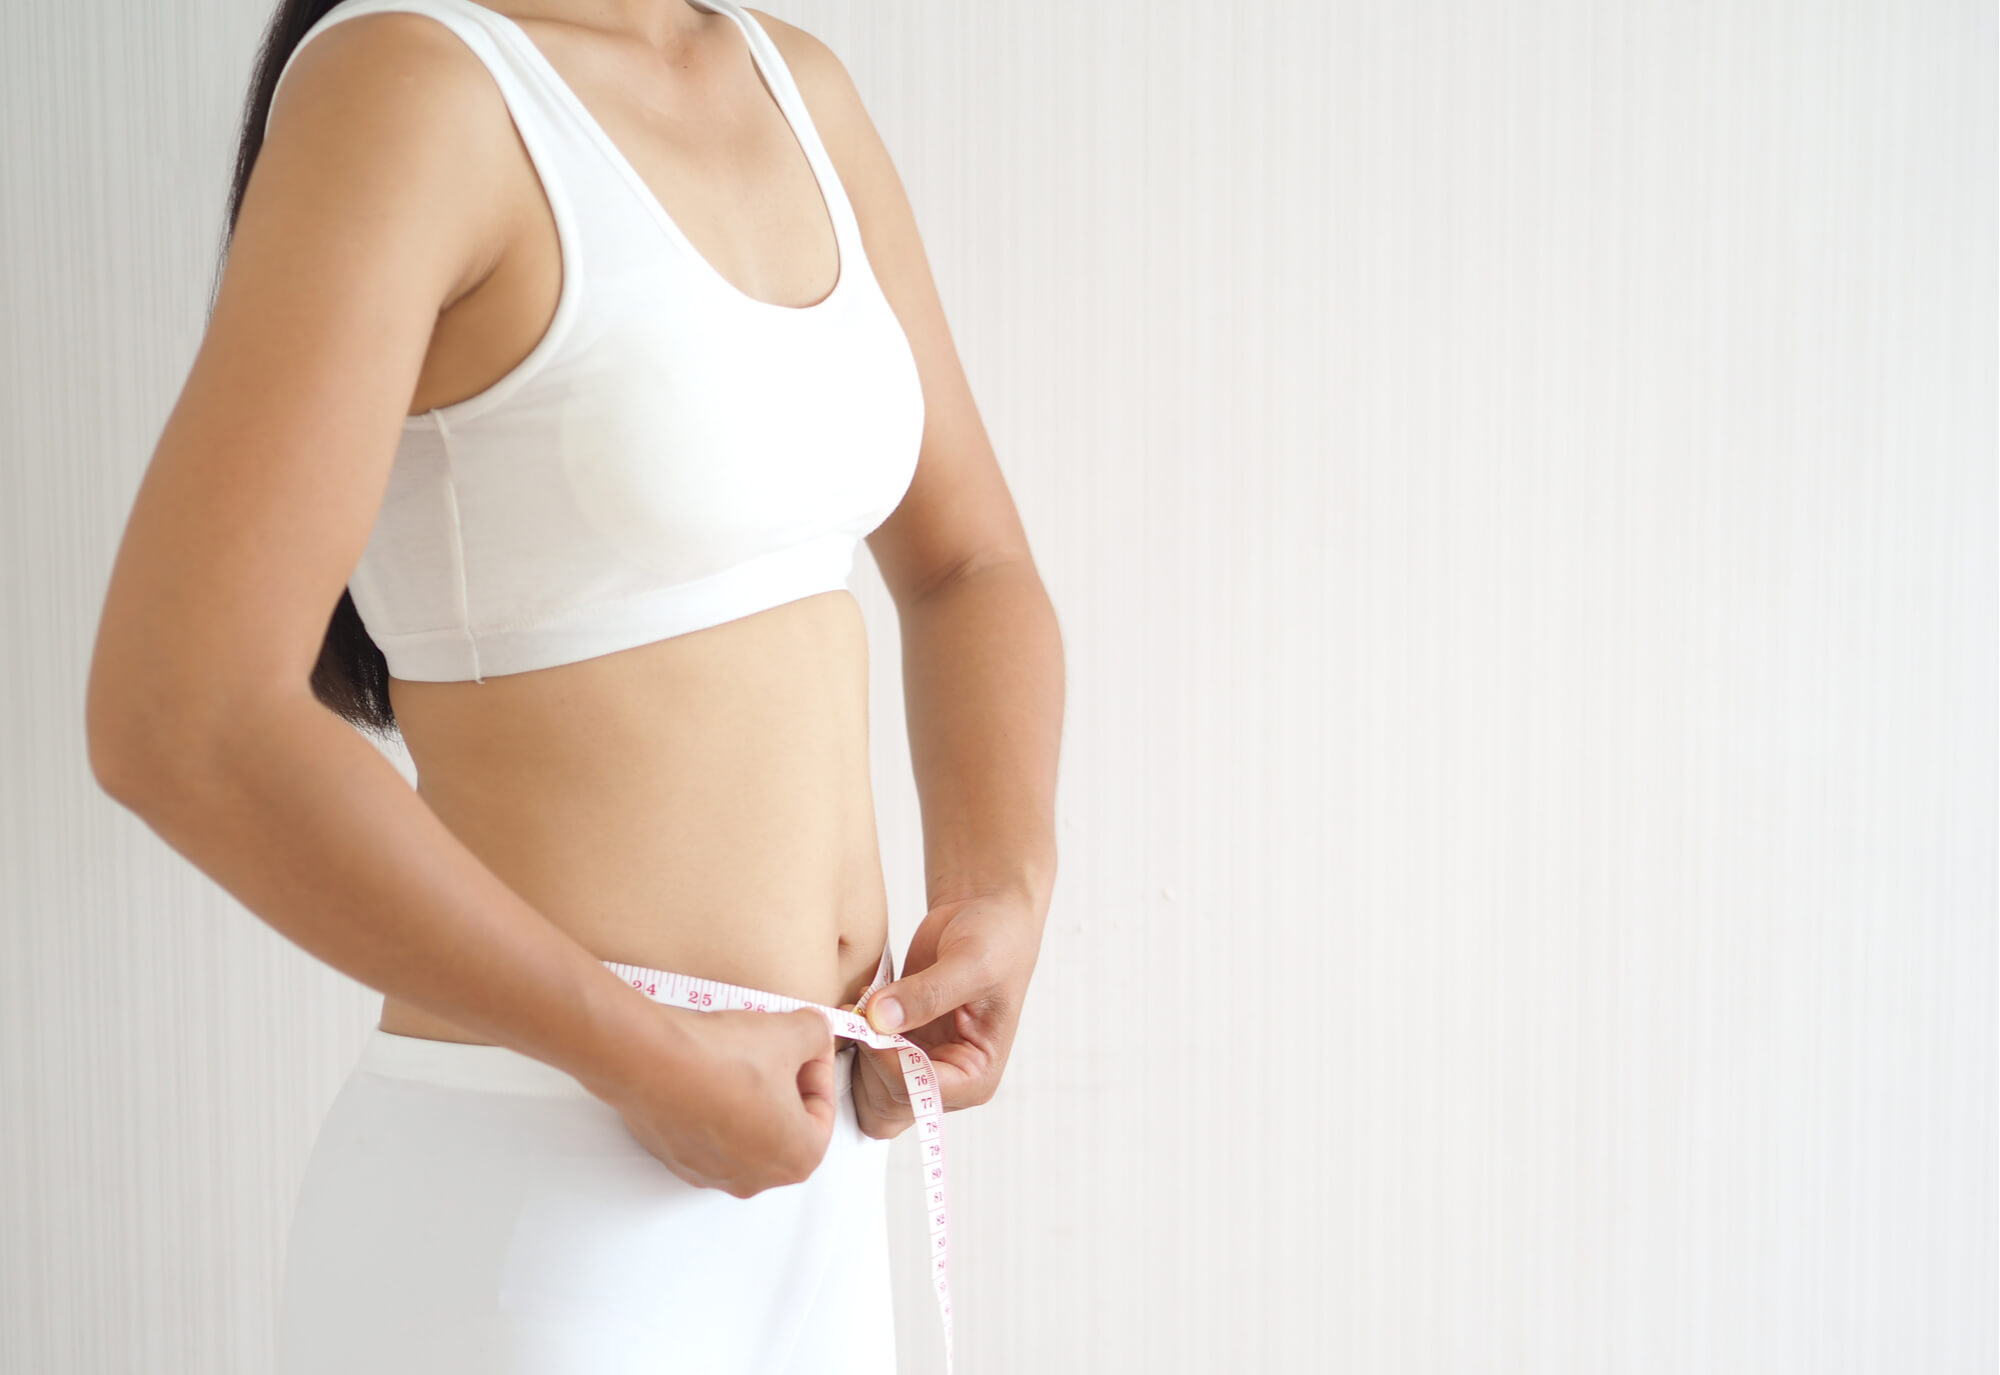 What food to eat to get rid of belly fat?